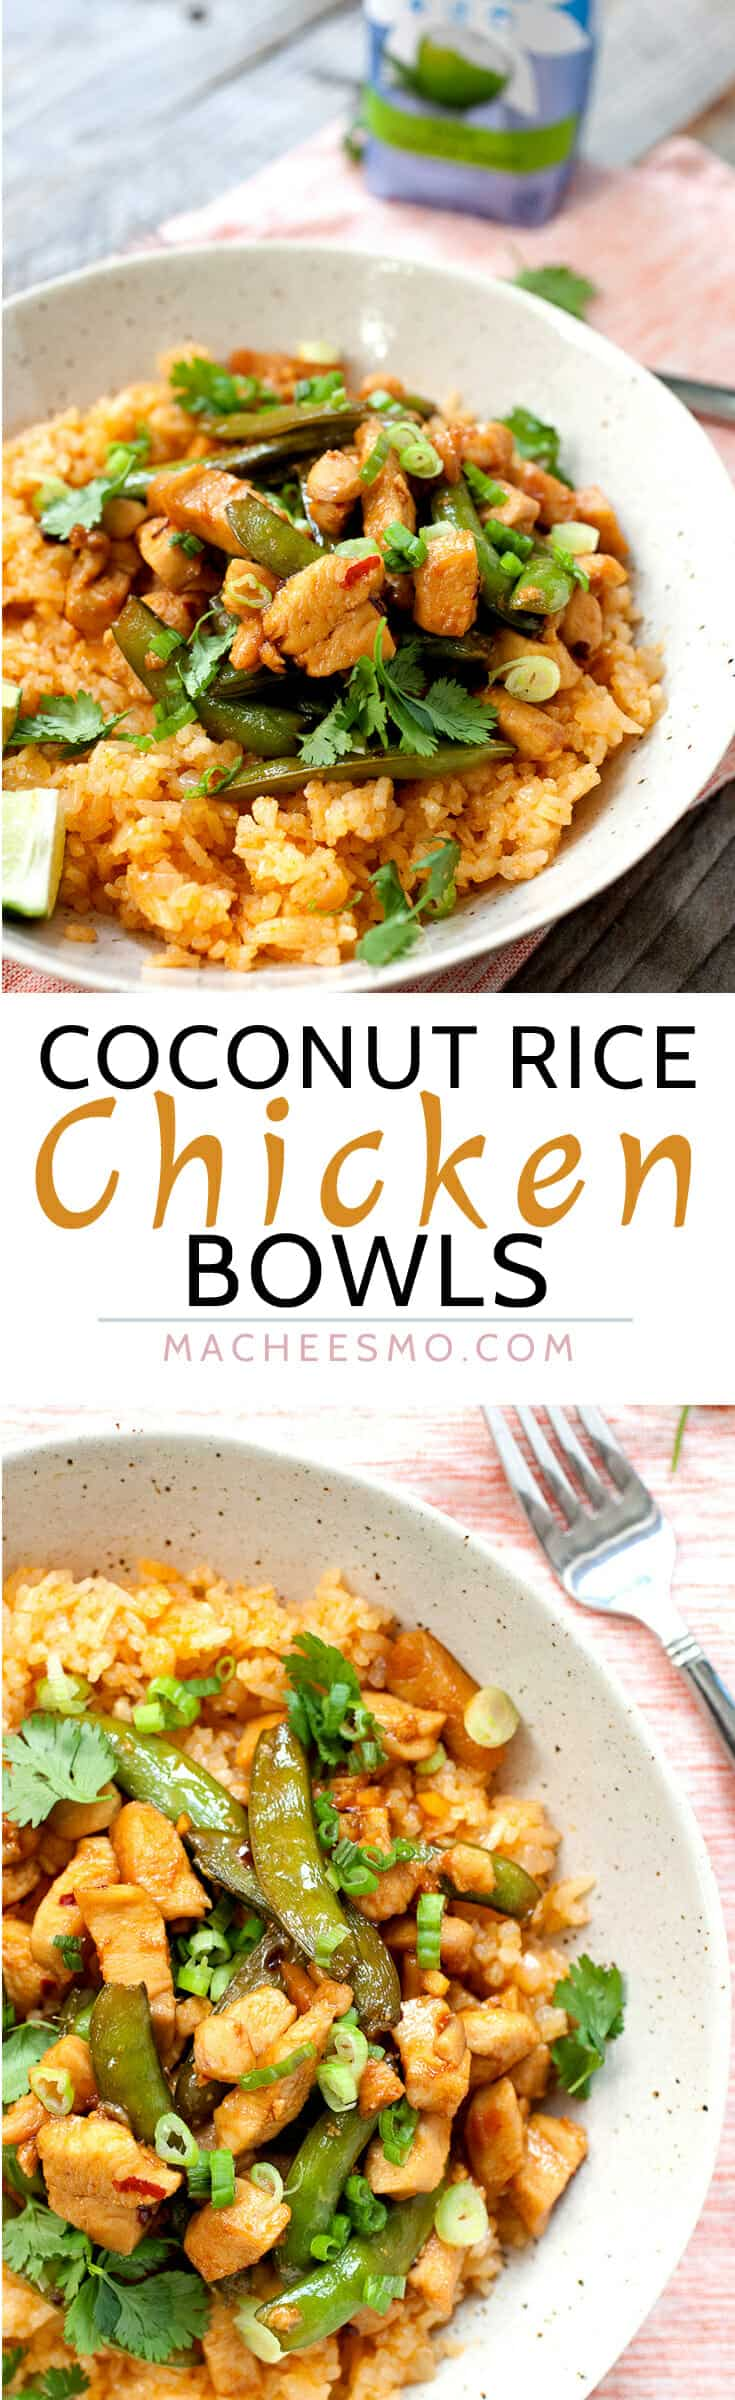 Coconut Rice Chicken Bowls: This coconut rice, made with coconut water instead of coconut milk, is light and flavorful with just a touch of spice. On top: chicken, snap peas, and an easy sauce. Takes about 30 minutes and better than take-out! Sponsored by @onecoconutwater | macheesmo.com